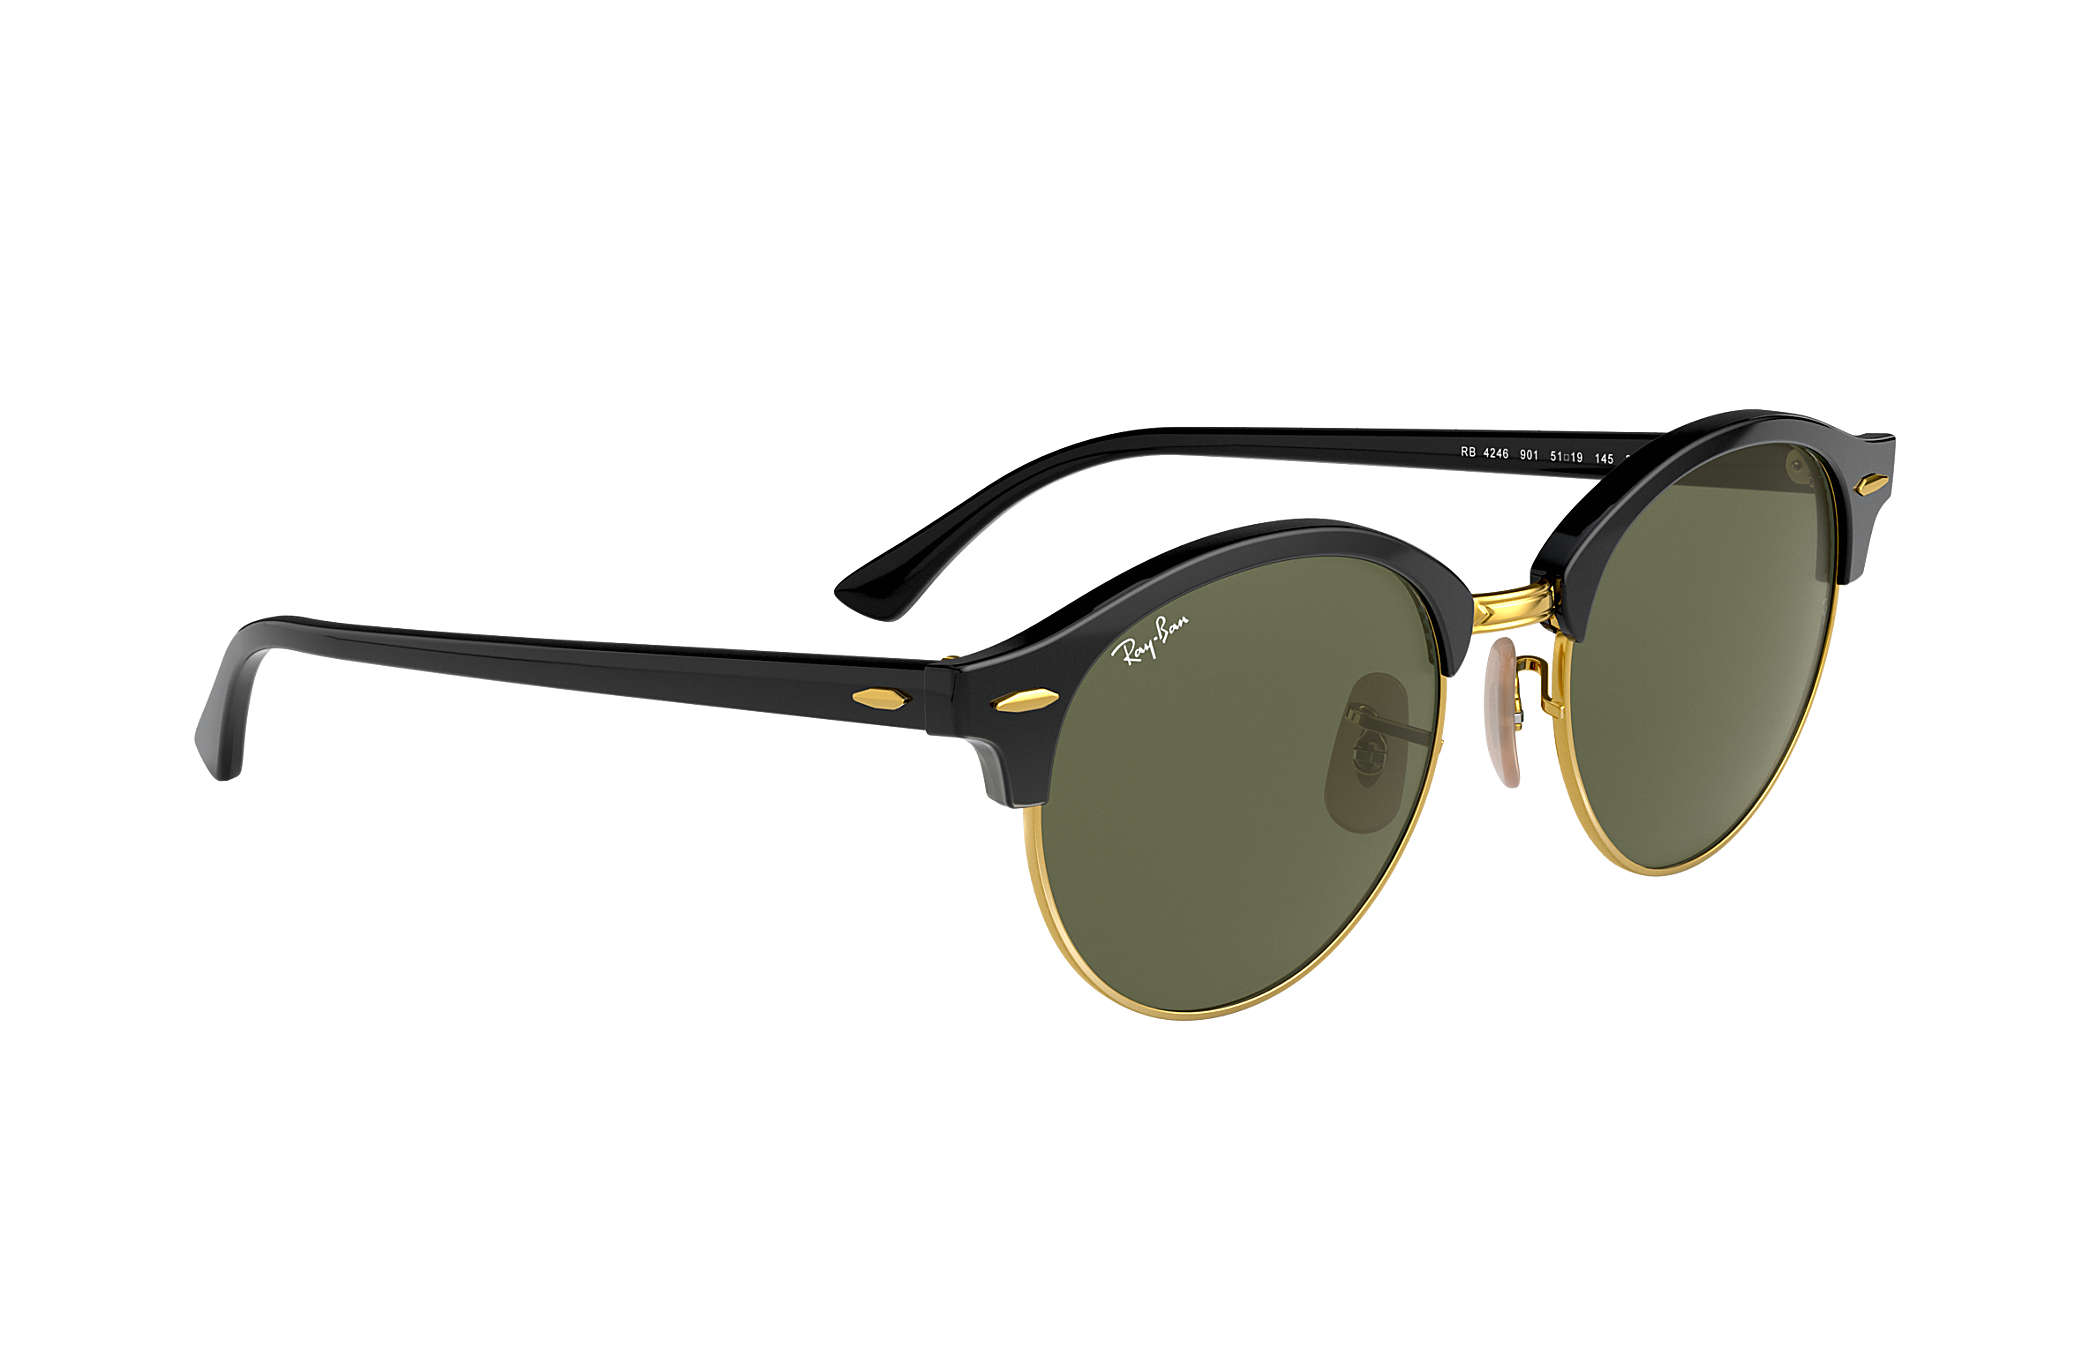 92aae365a5 Ray-Ban Clubround Classic RB4246 Black - Acetate - Green Lenses ...